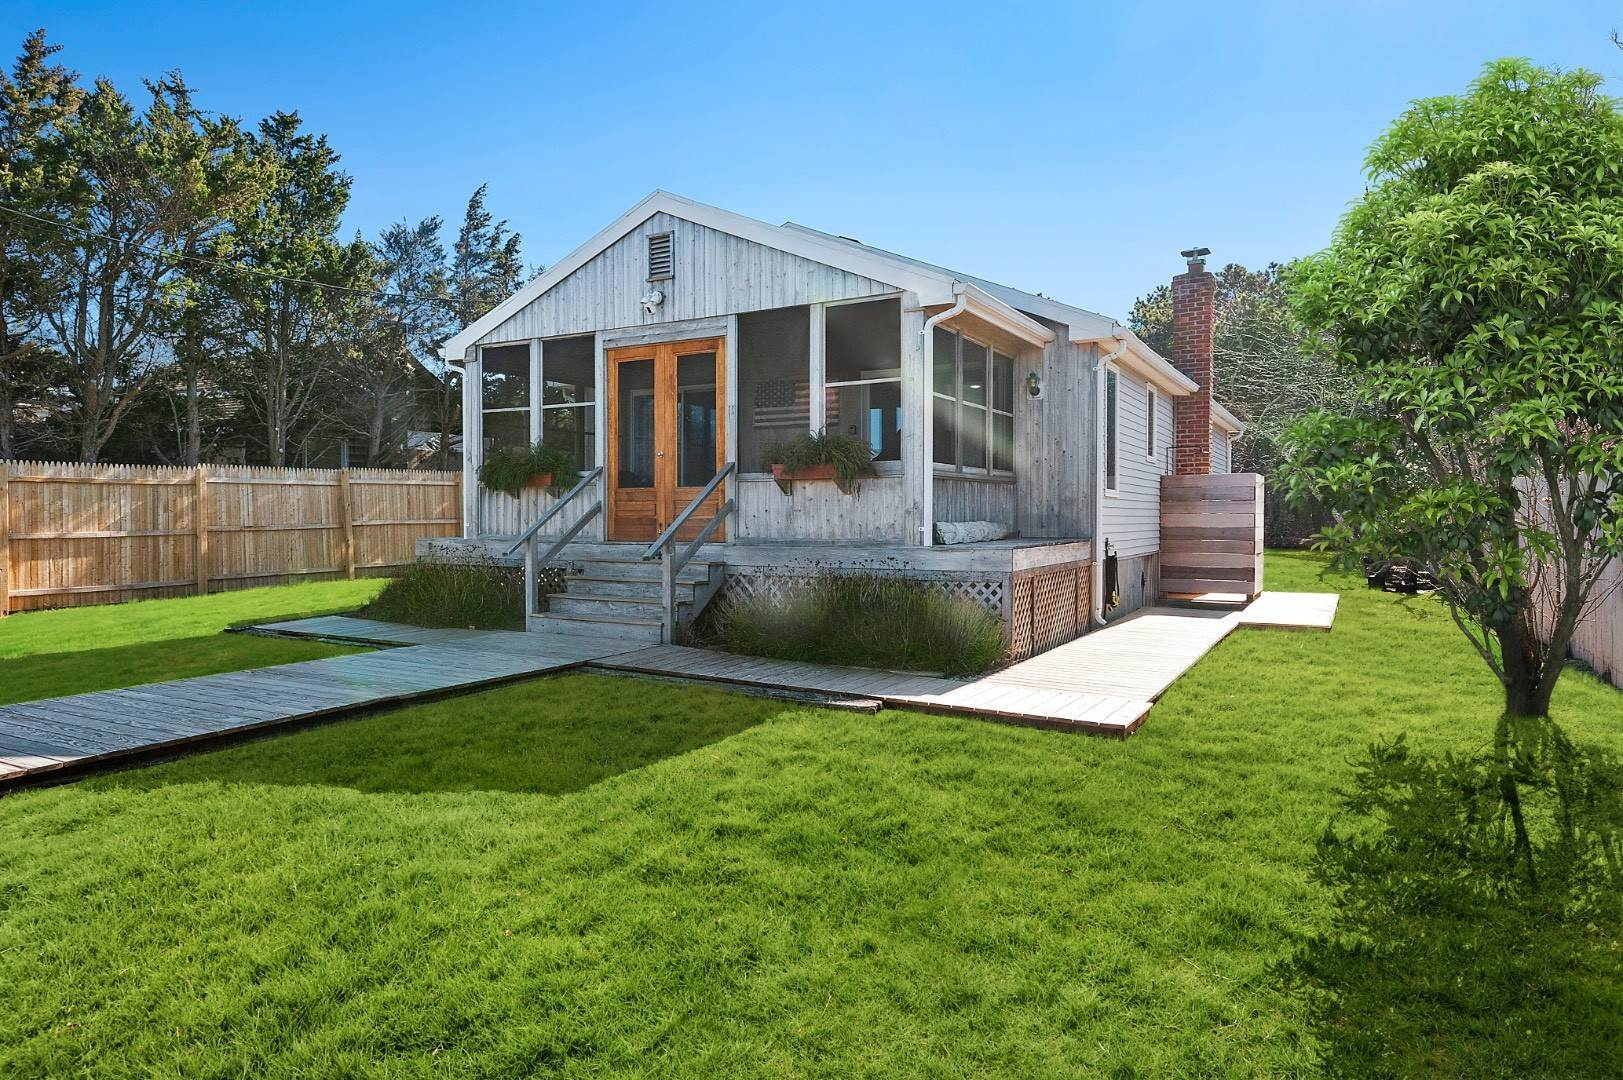 Single Family Home for Sale at Newly Updated Amagansett Beach Cottage 241 Shore Road, Napeague, NY 11930